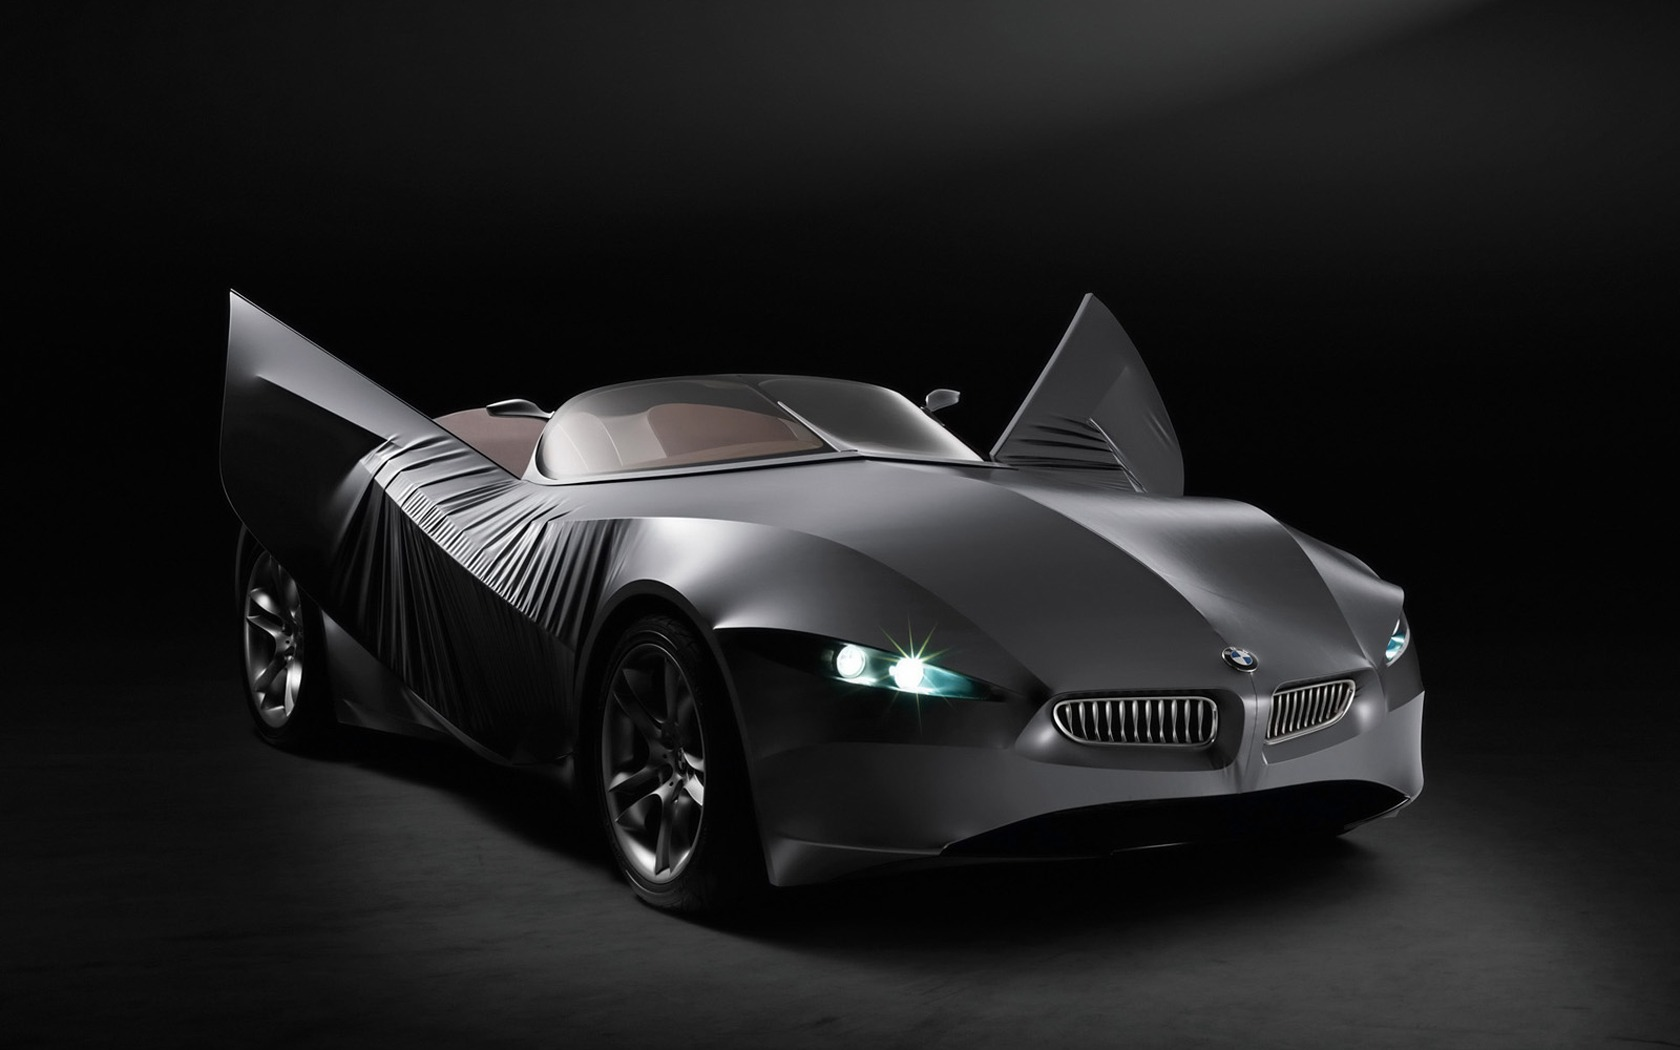 Bmw Gina Concept Wallpaper Bmw Cars Wallpapers In Jpg Format For